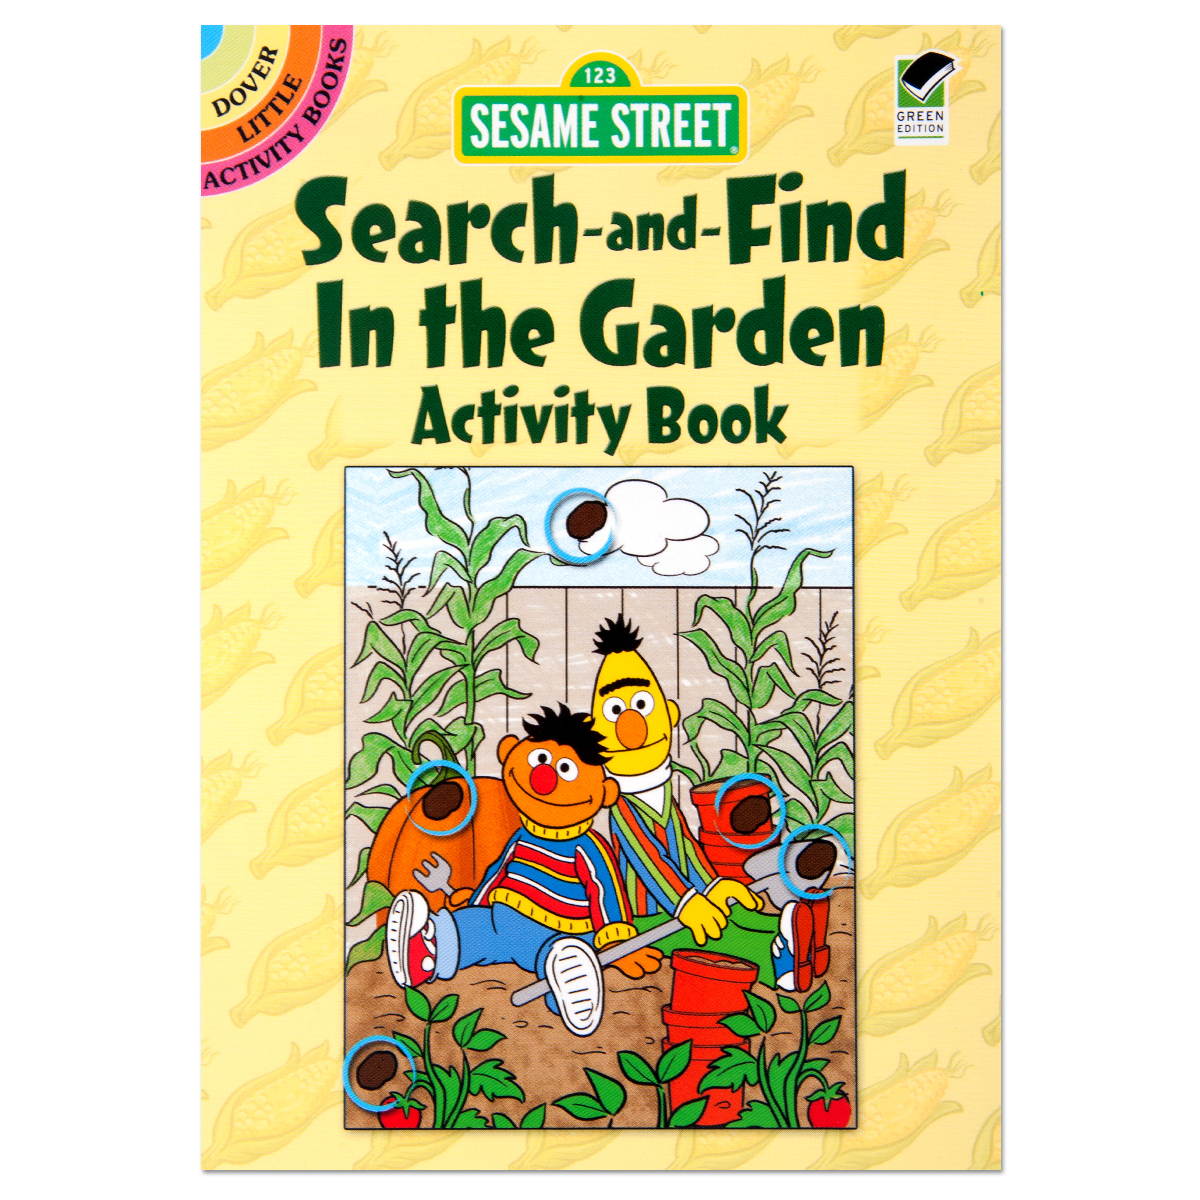 Sesame Street: Search-and-Find In the Garden Activity Book